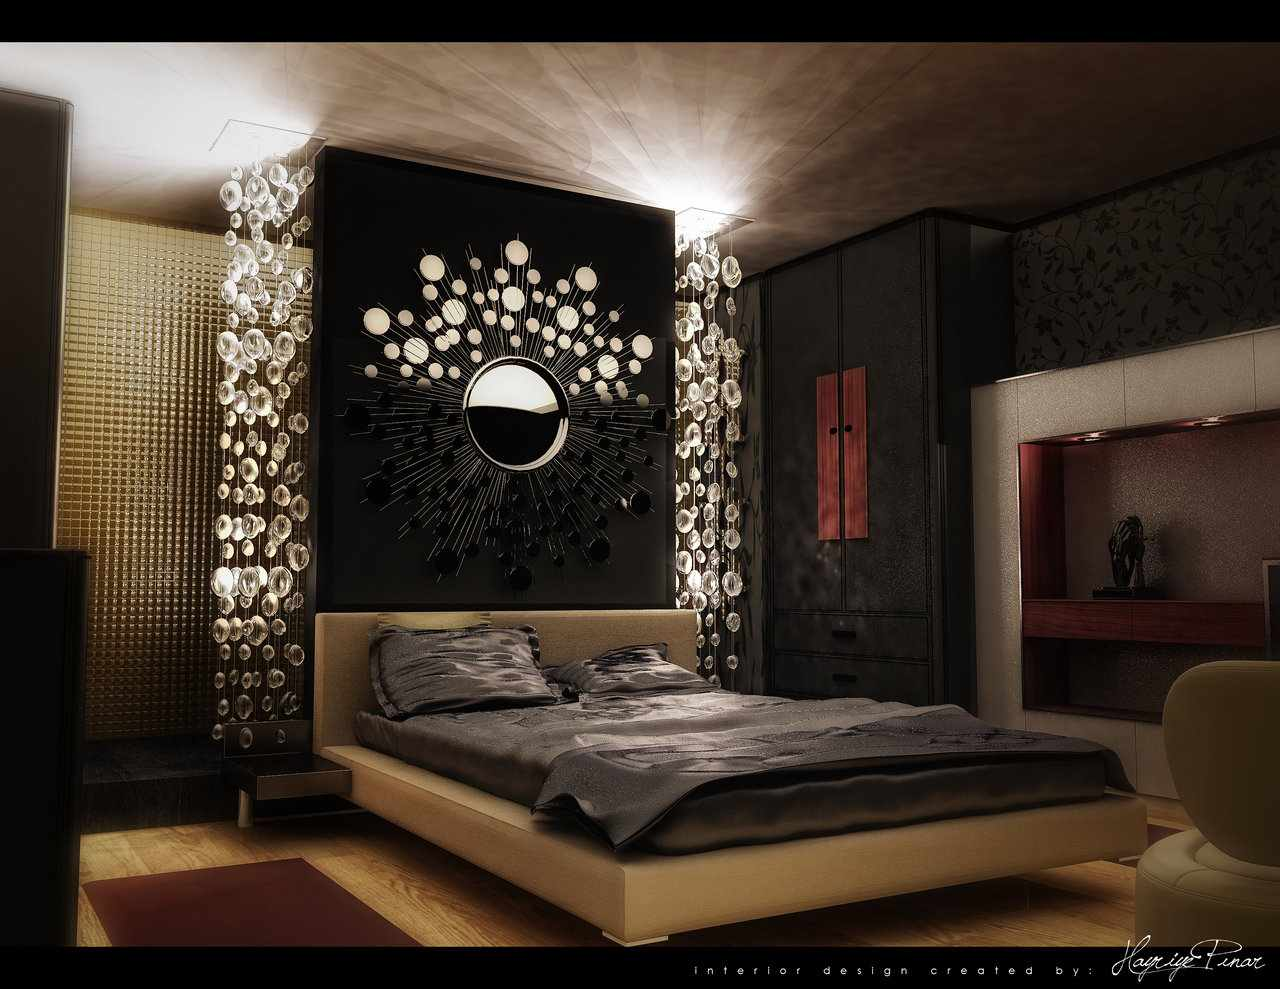 ikea bedroom ideas ikea bedroom 2014 ideas room design ideas. Black Bedroom Furniture Sets. Home Design Ideas